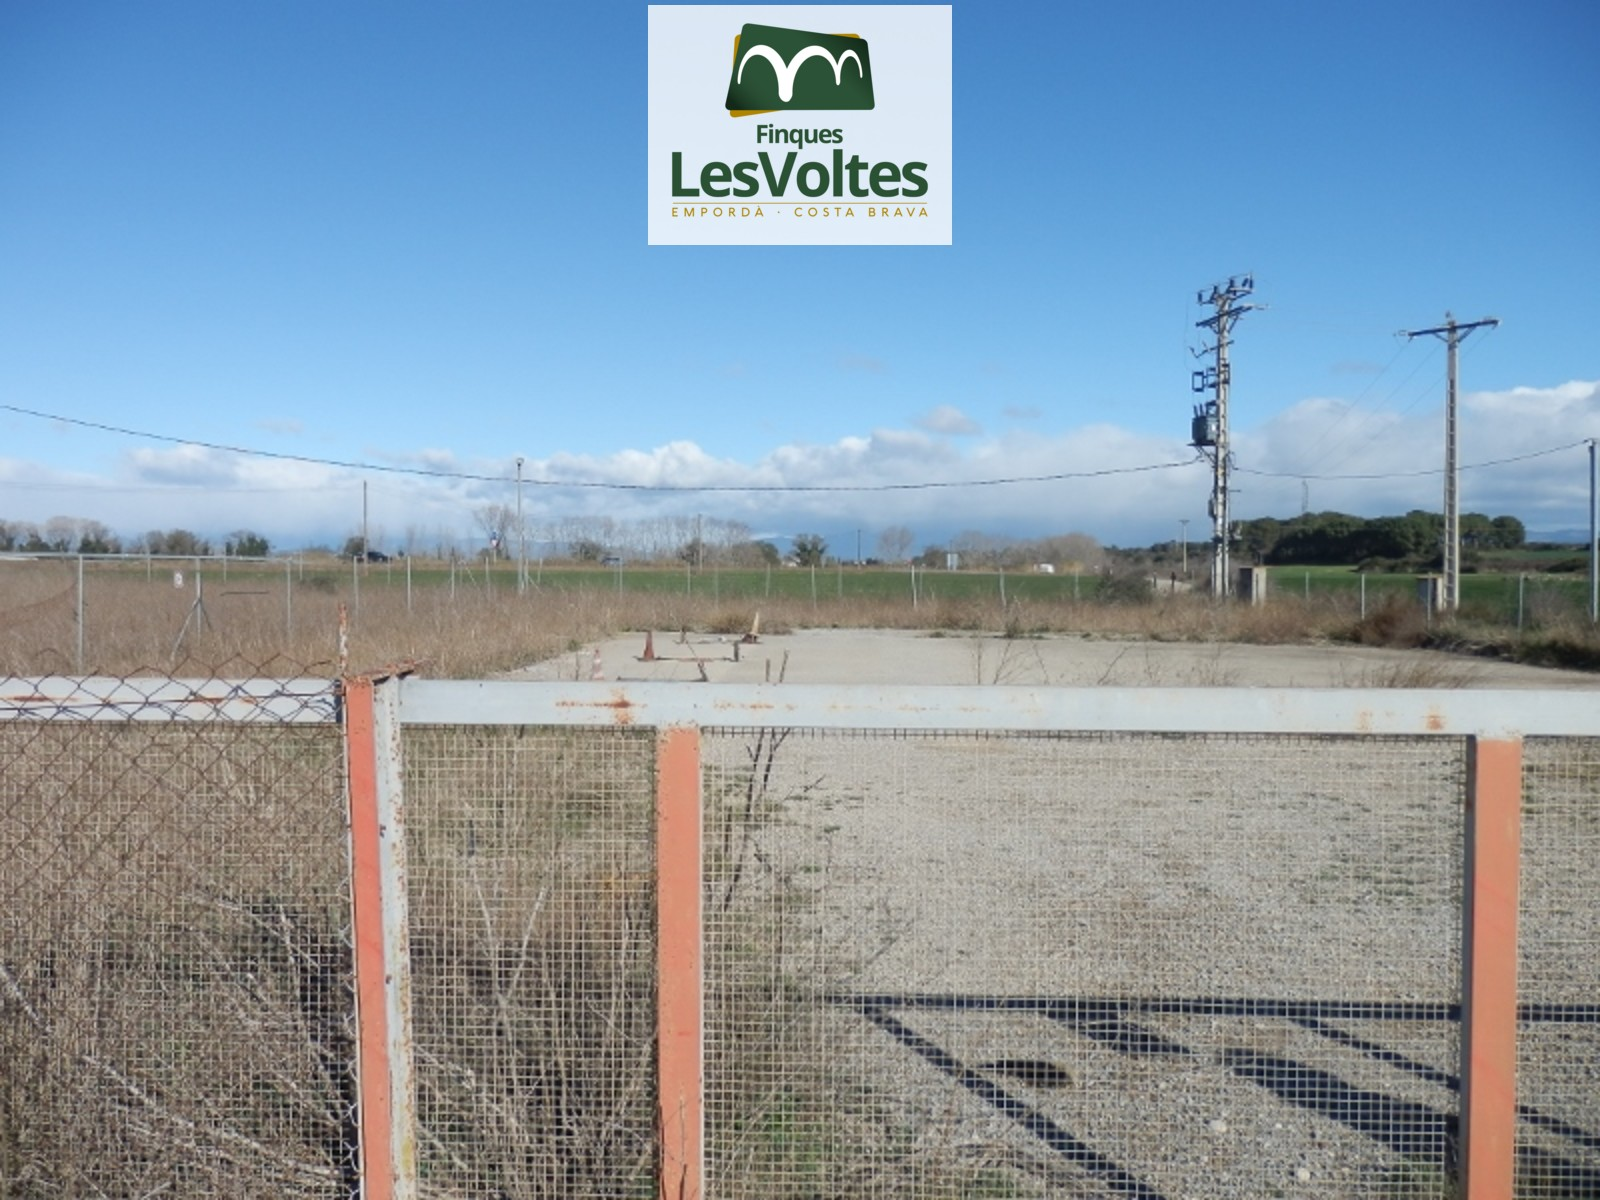 LAND FOR SALE IN VILACOLUM TO STORE FUEL WITH ALL PERMITS. FULLY FENCED PROPERTY